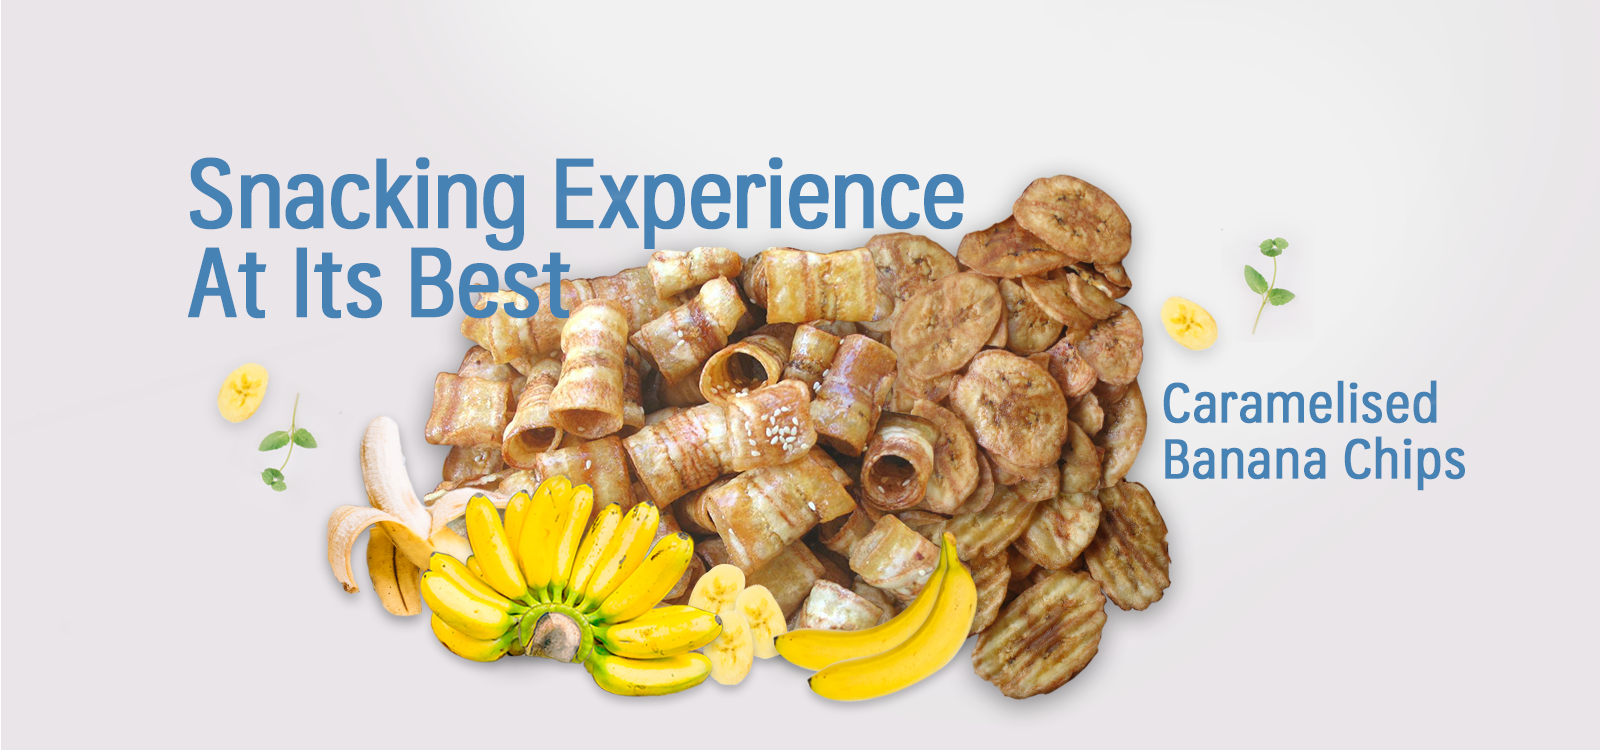 Click here to experience a whole new snacking experience